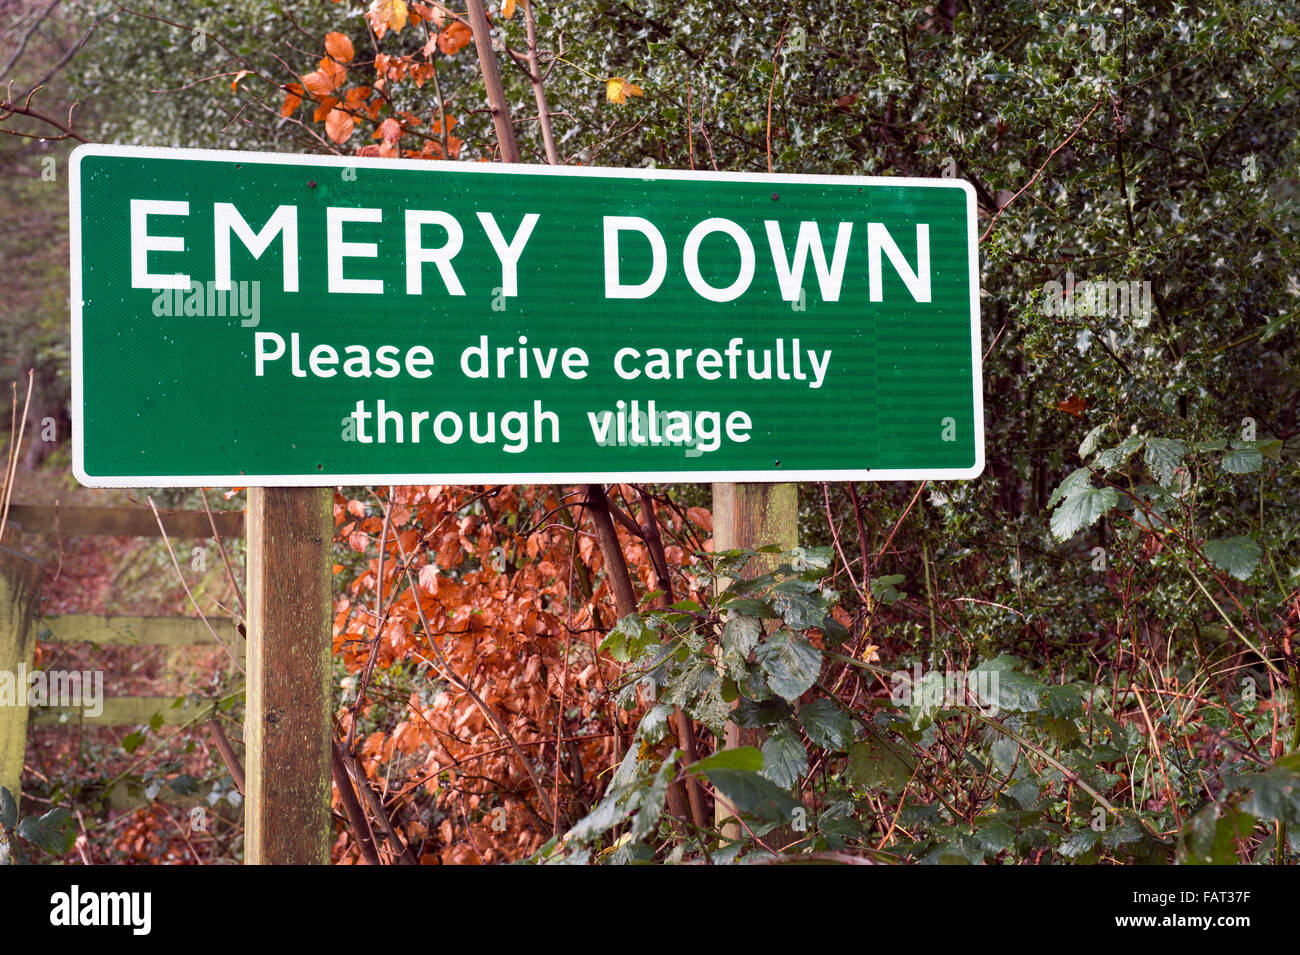 Emery Down village name sign, Emery Down, New Forest, Hampshire, England, UK. - Stock Image